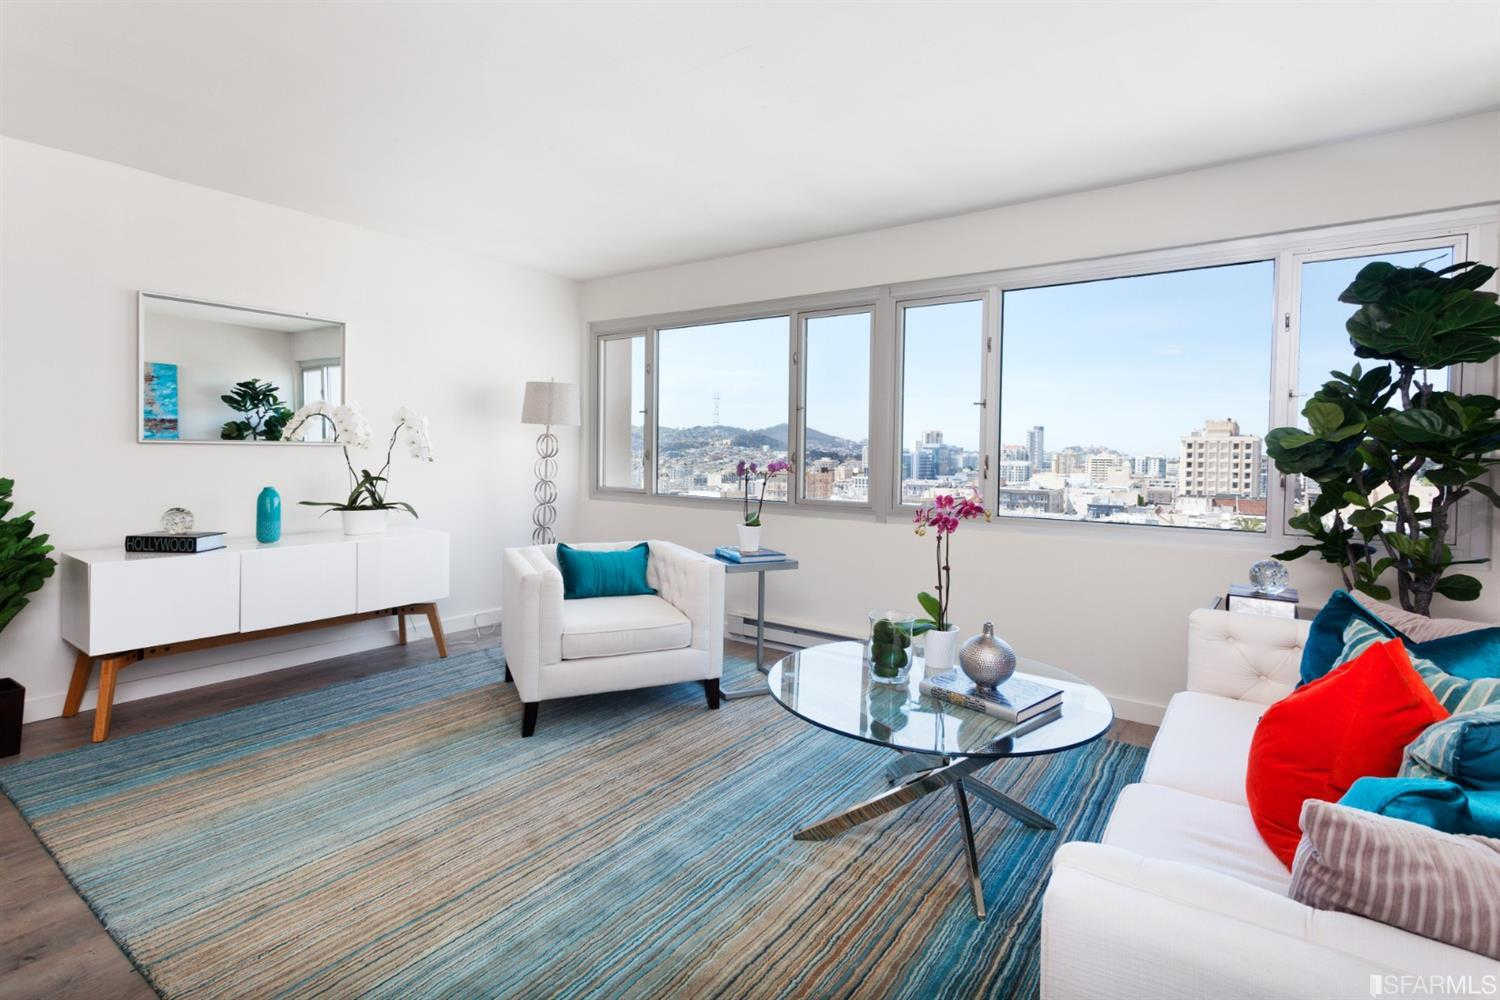 1001 Pine Street #1309, San Francisco, CA 94109 has an Open House on  Sunday, April 28, 2019 2:00 PM to 4:00 PM